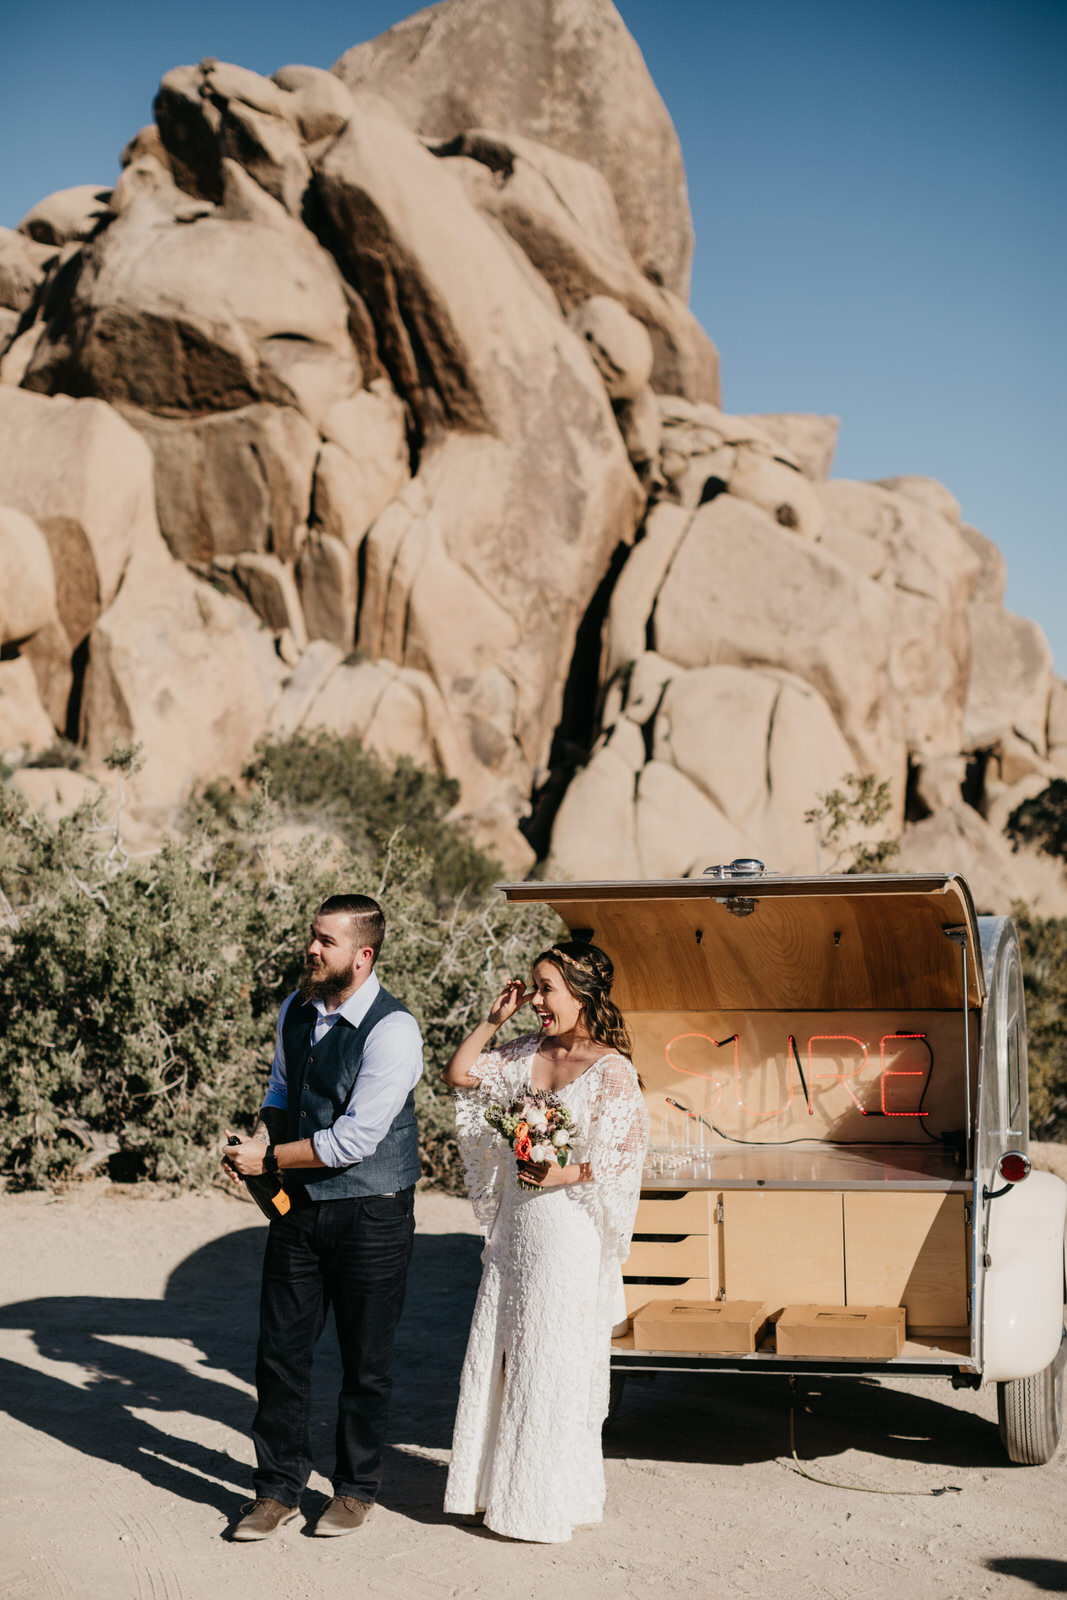 Intimate Joshua Tree Elopement Ceremony - Bride Groom